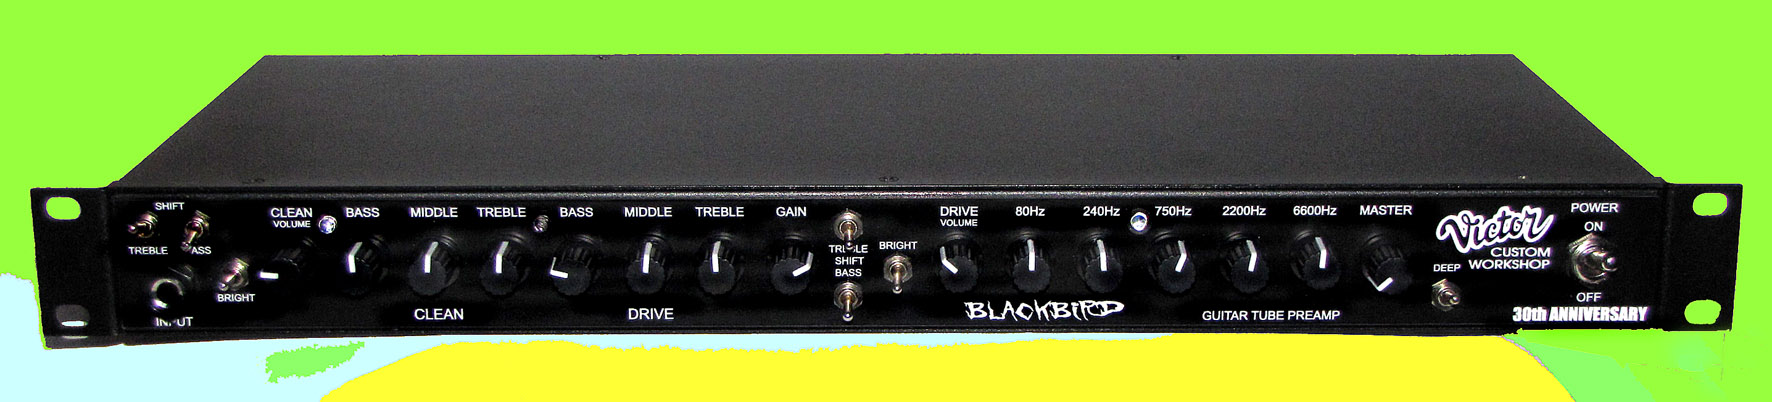 BLACKBIRD  Guitar tube preamp  Price 520€ | Victor Custom